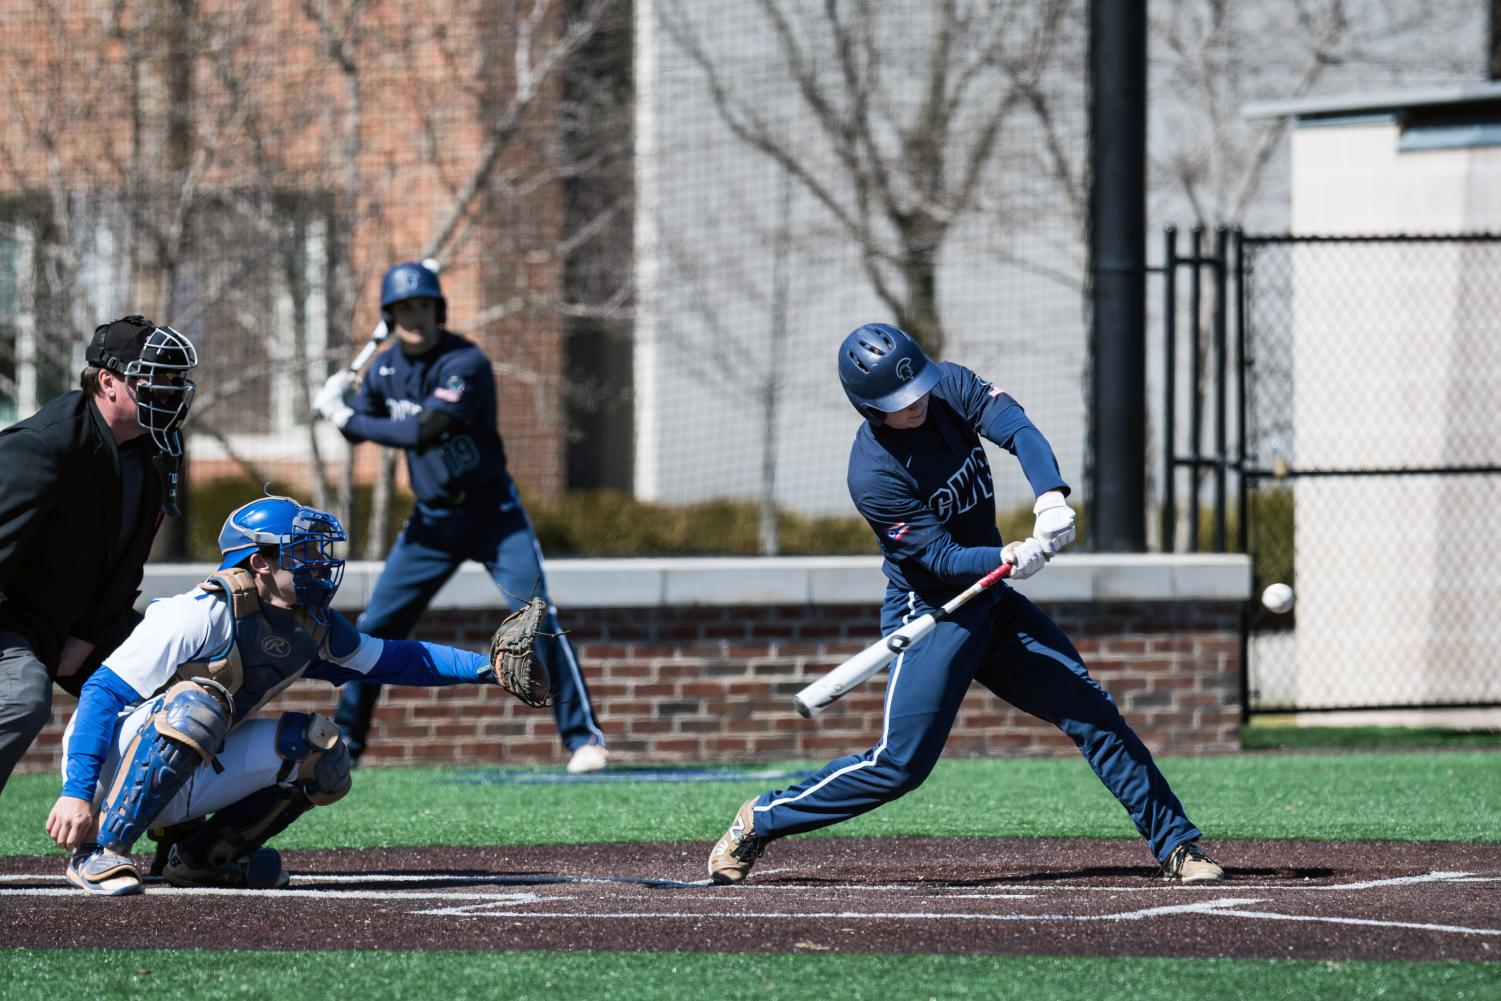 Jake Ryan swings at a pitch. Ryan was named a UAA Hitter of the Week after finishing the week batting .556 with five runs scored, one double, three home runs and five RBIs.